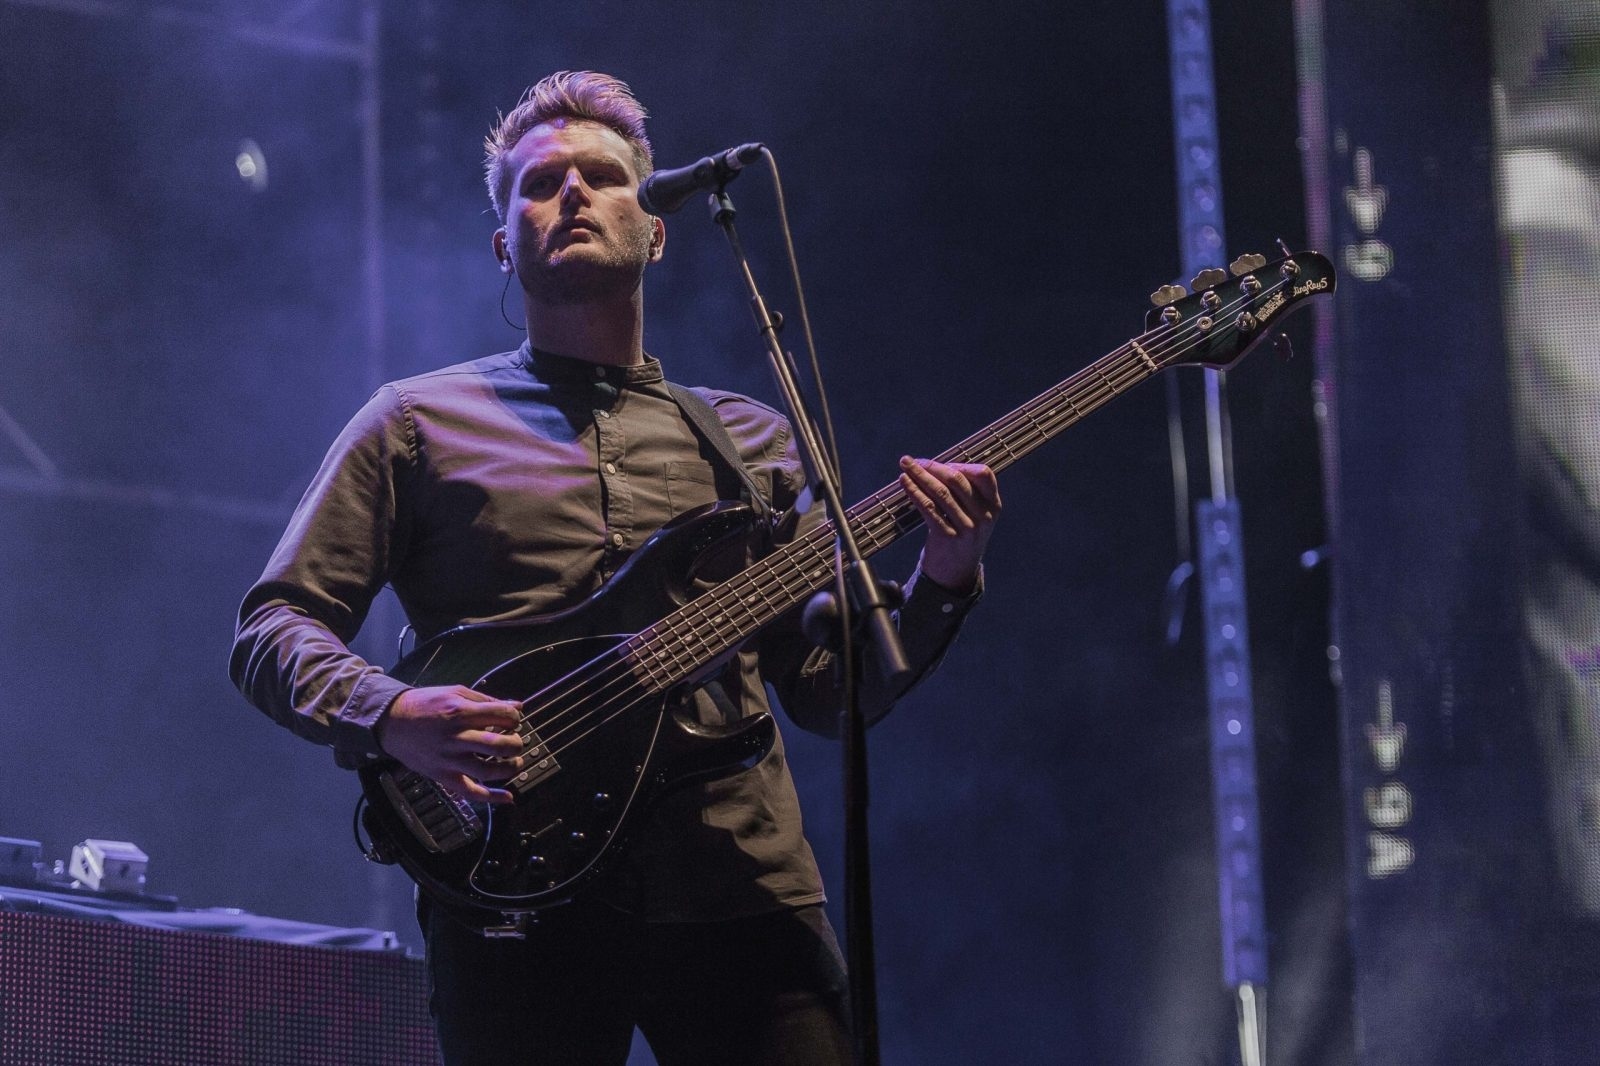 Cliff Deane playing bass picture this